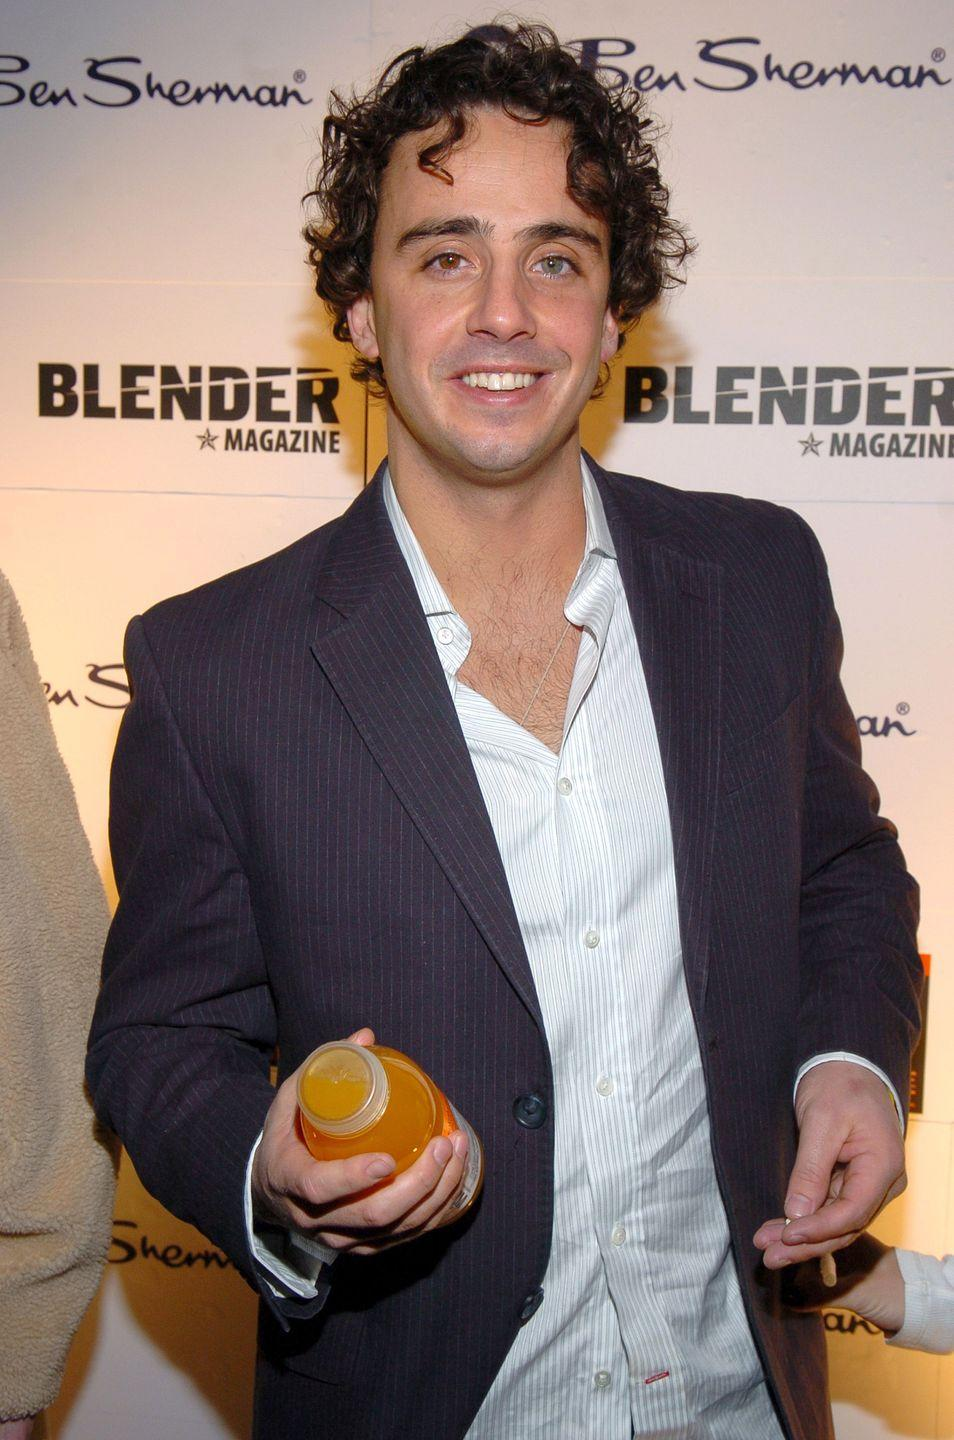 "<p>Burns appeared on <em>The Challenge</em>, but it wasn't long before he left the reality TV spotlight for good. ""One of the producers from our show took me under his wing and taught me the activation game. I got into the event activation business and even selling sponsorship into MTV shows,"" Burns told <a href=""http://www.mtv.com/news/2383064/real-world-seattle-david-burns/"" rel=""nofollow noopener"" target=""_blank"" data-ylk=""slk:MTV.com"" class=""link rapid-noclick-resp"">MTV.com</a>. After working in marketing and sales, he landed a job at the <em>Los Angeles Times,</em> overseeing advertising and business for entertainment and live events. </p>"